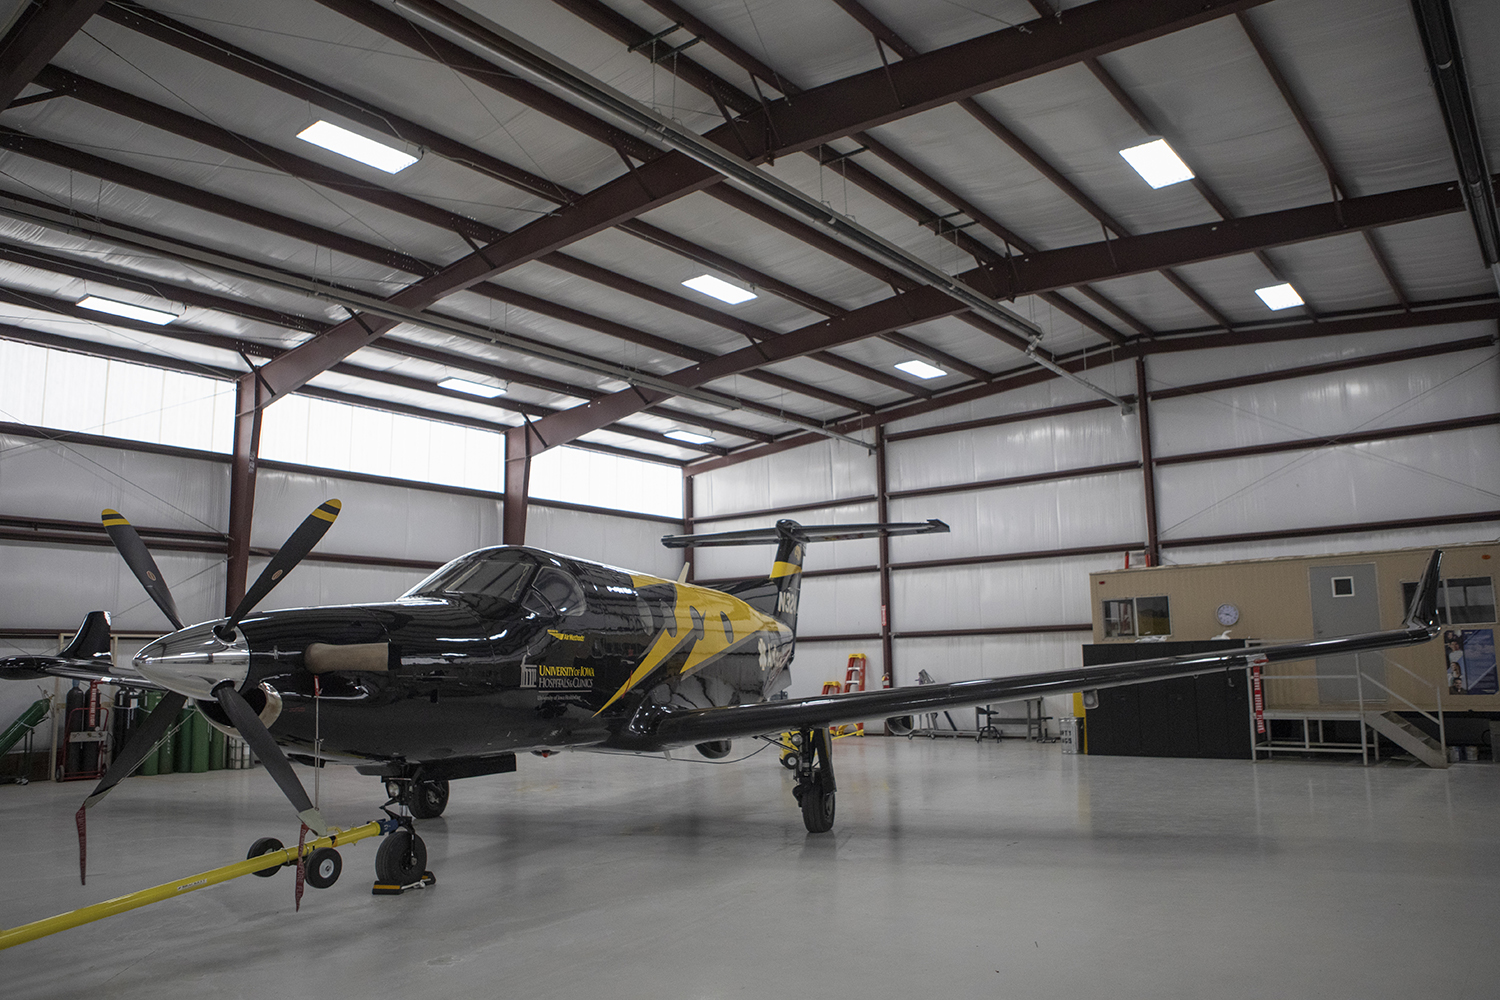 The new University of Iowa Hospitals AirCare plane rests in its hanger on Wednesday, February 20, 2019. This PC-12 was built by Swiss company Pilatus and boasts a Pratt and Whitney PT6 turboprop engine capable of producing over 1900 horsepower.